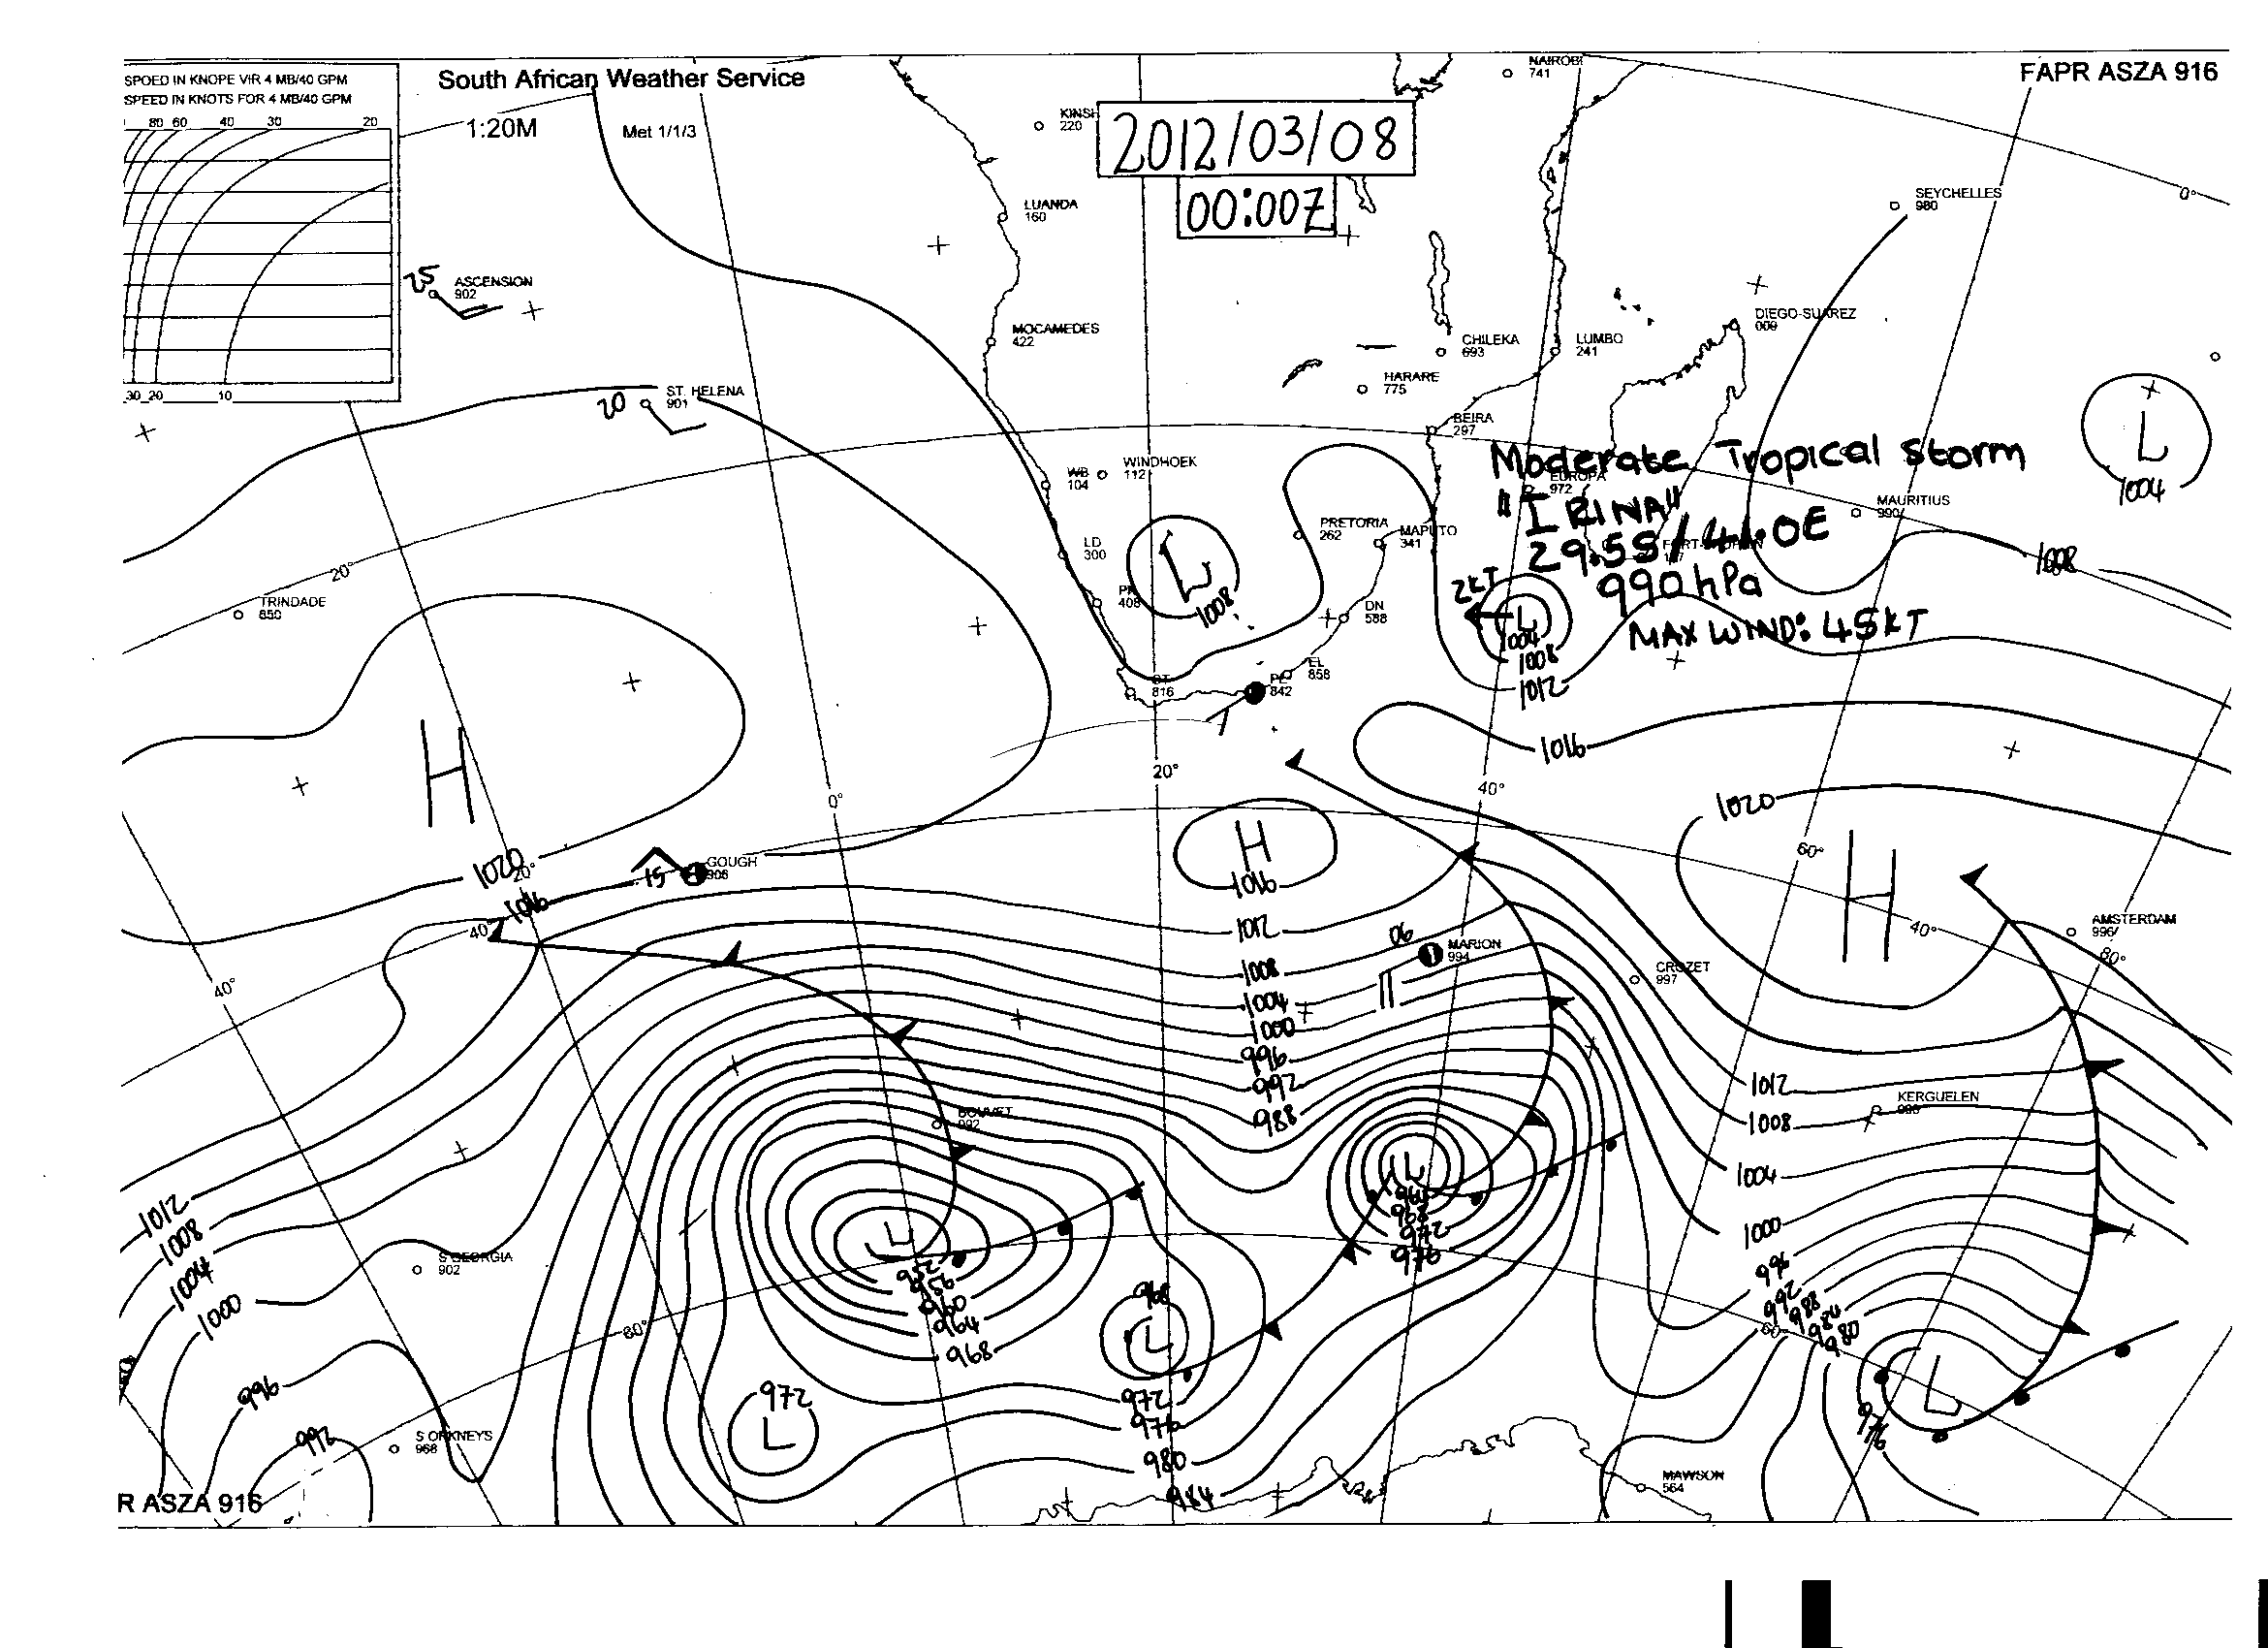 Synoptic weather map images synoptic weather map weather map 8 march 2012 biocorpaavc